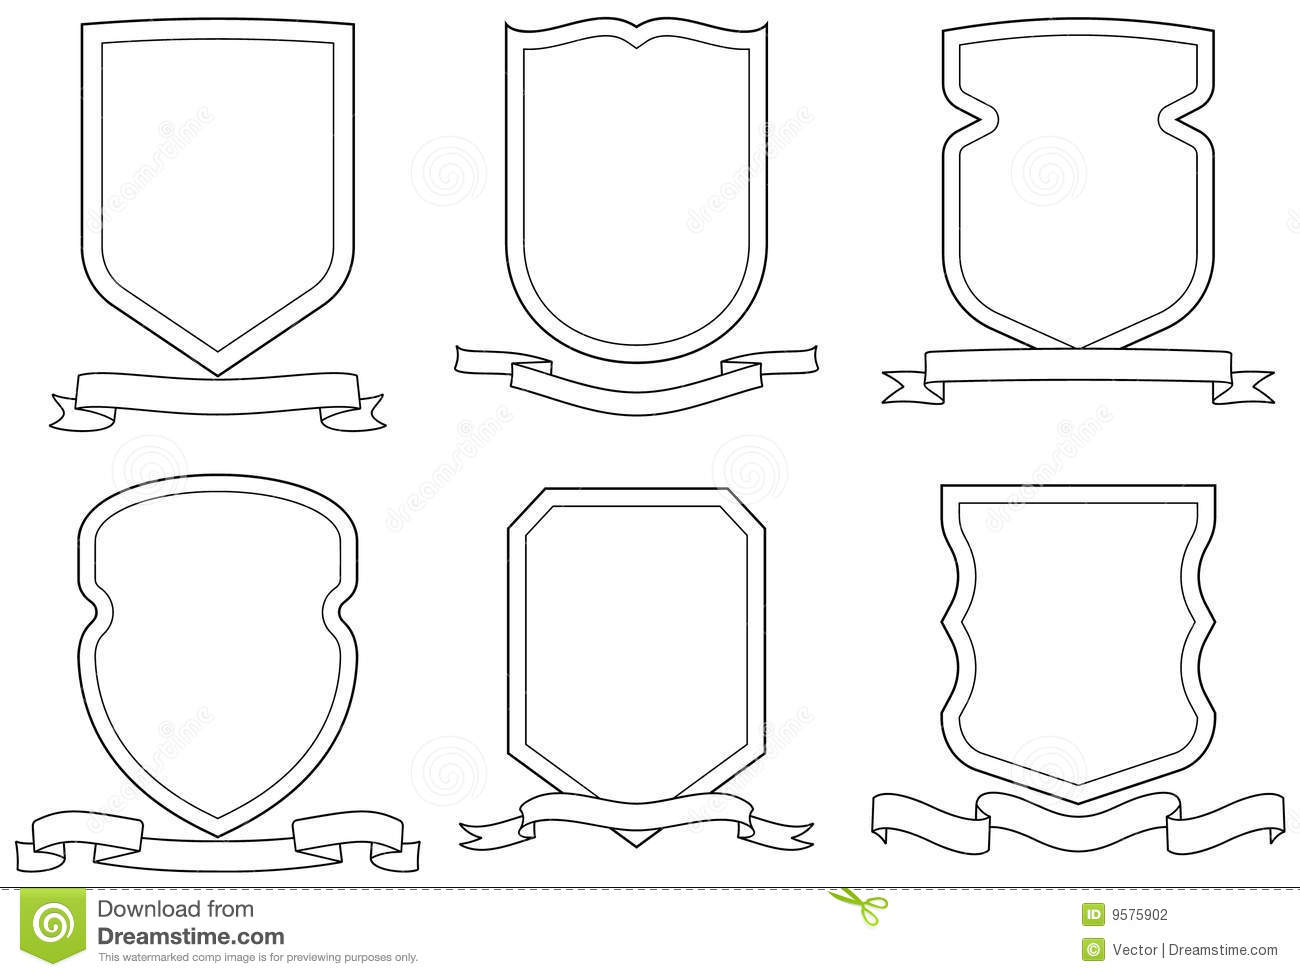 scroll drawing template - set of vector emblems crests shields and scrolls stock